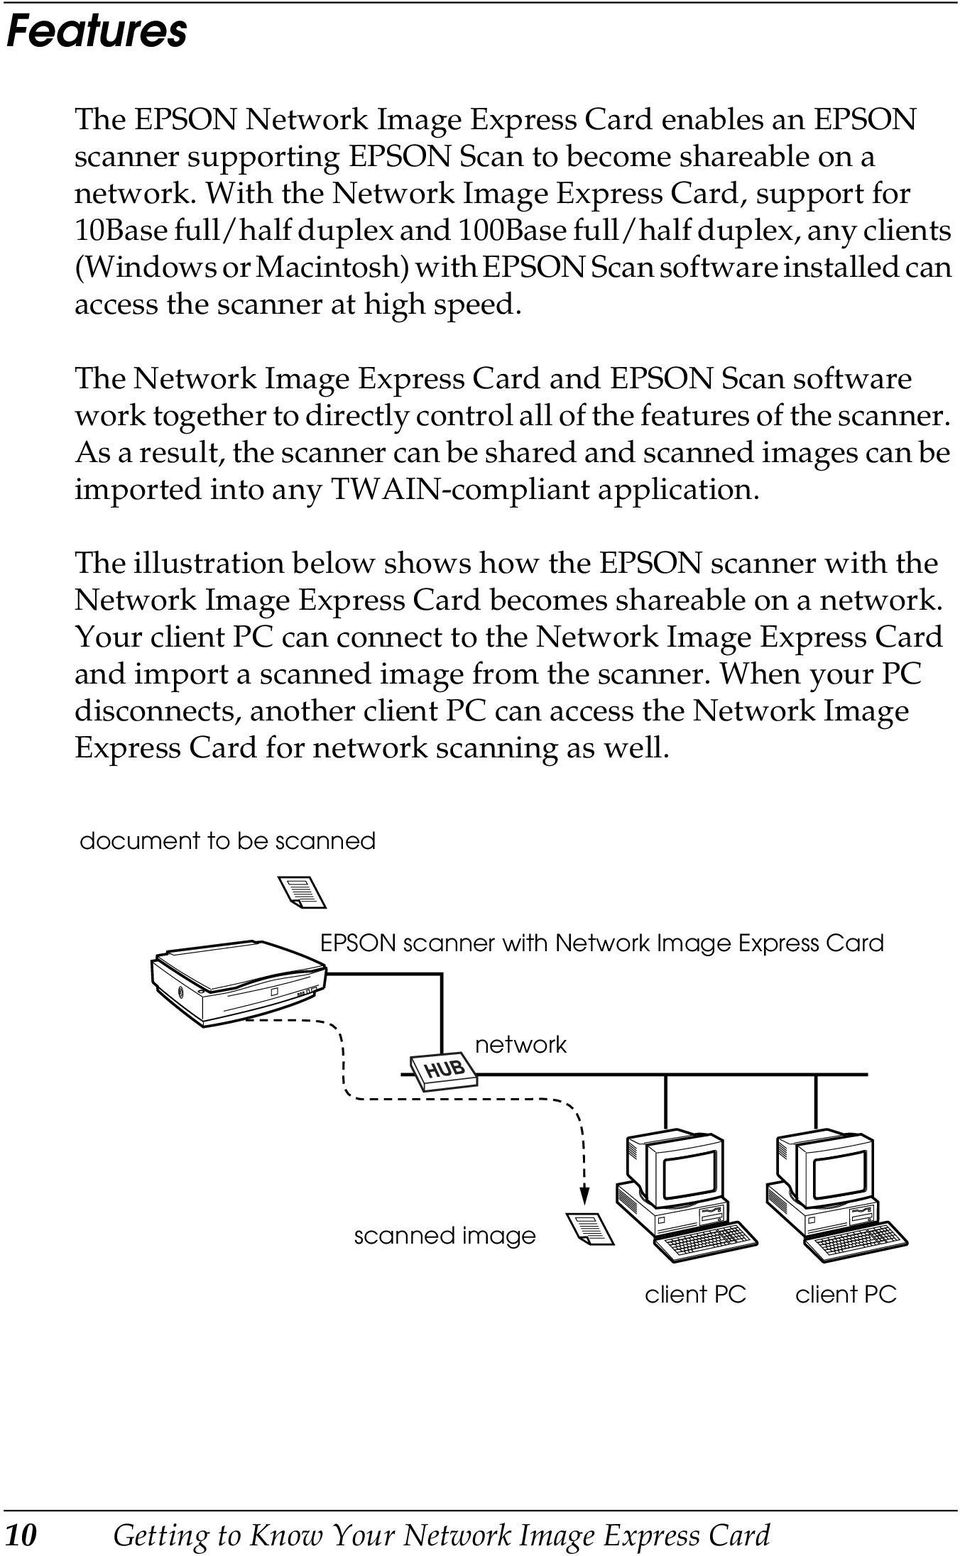 EPSON NETWORK IMAGE EXPRESS CARD NET CONFIG DRIVER FOR WINDOWS 8